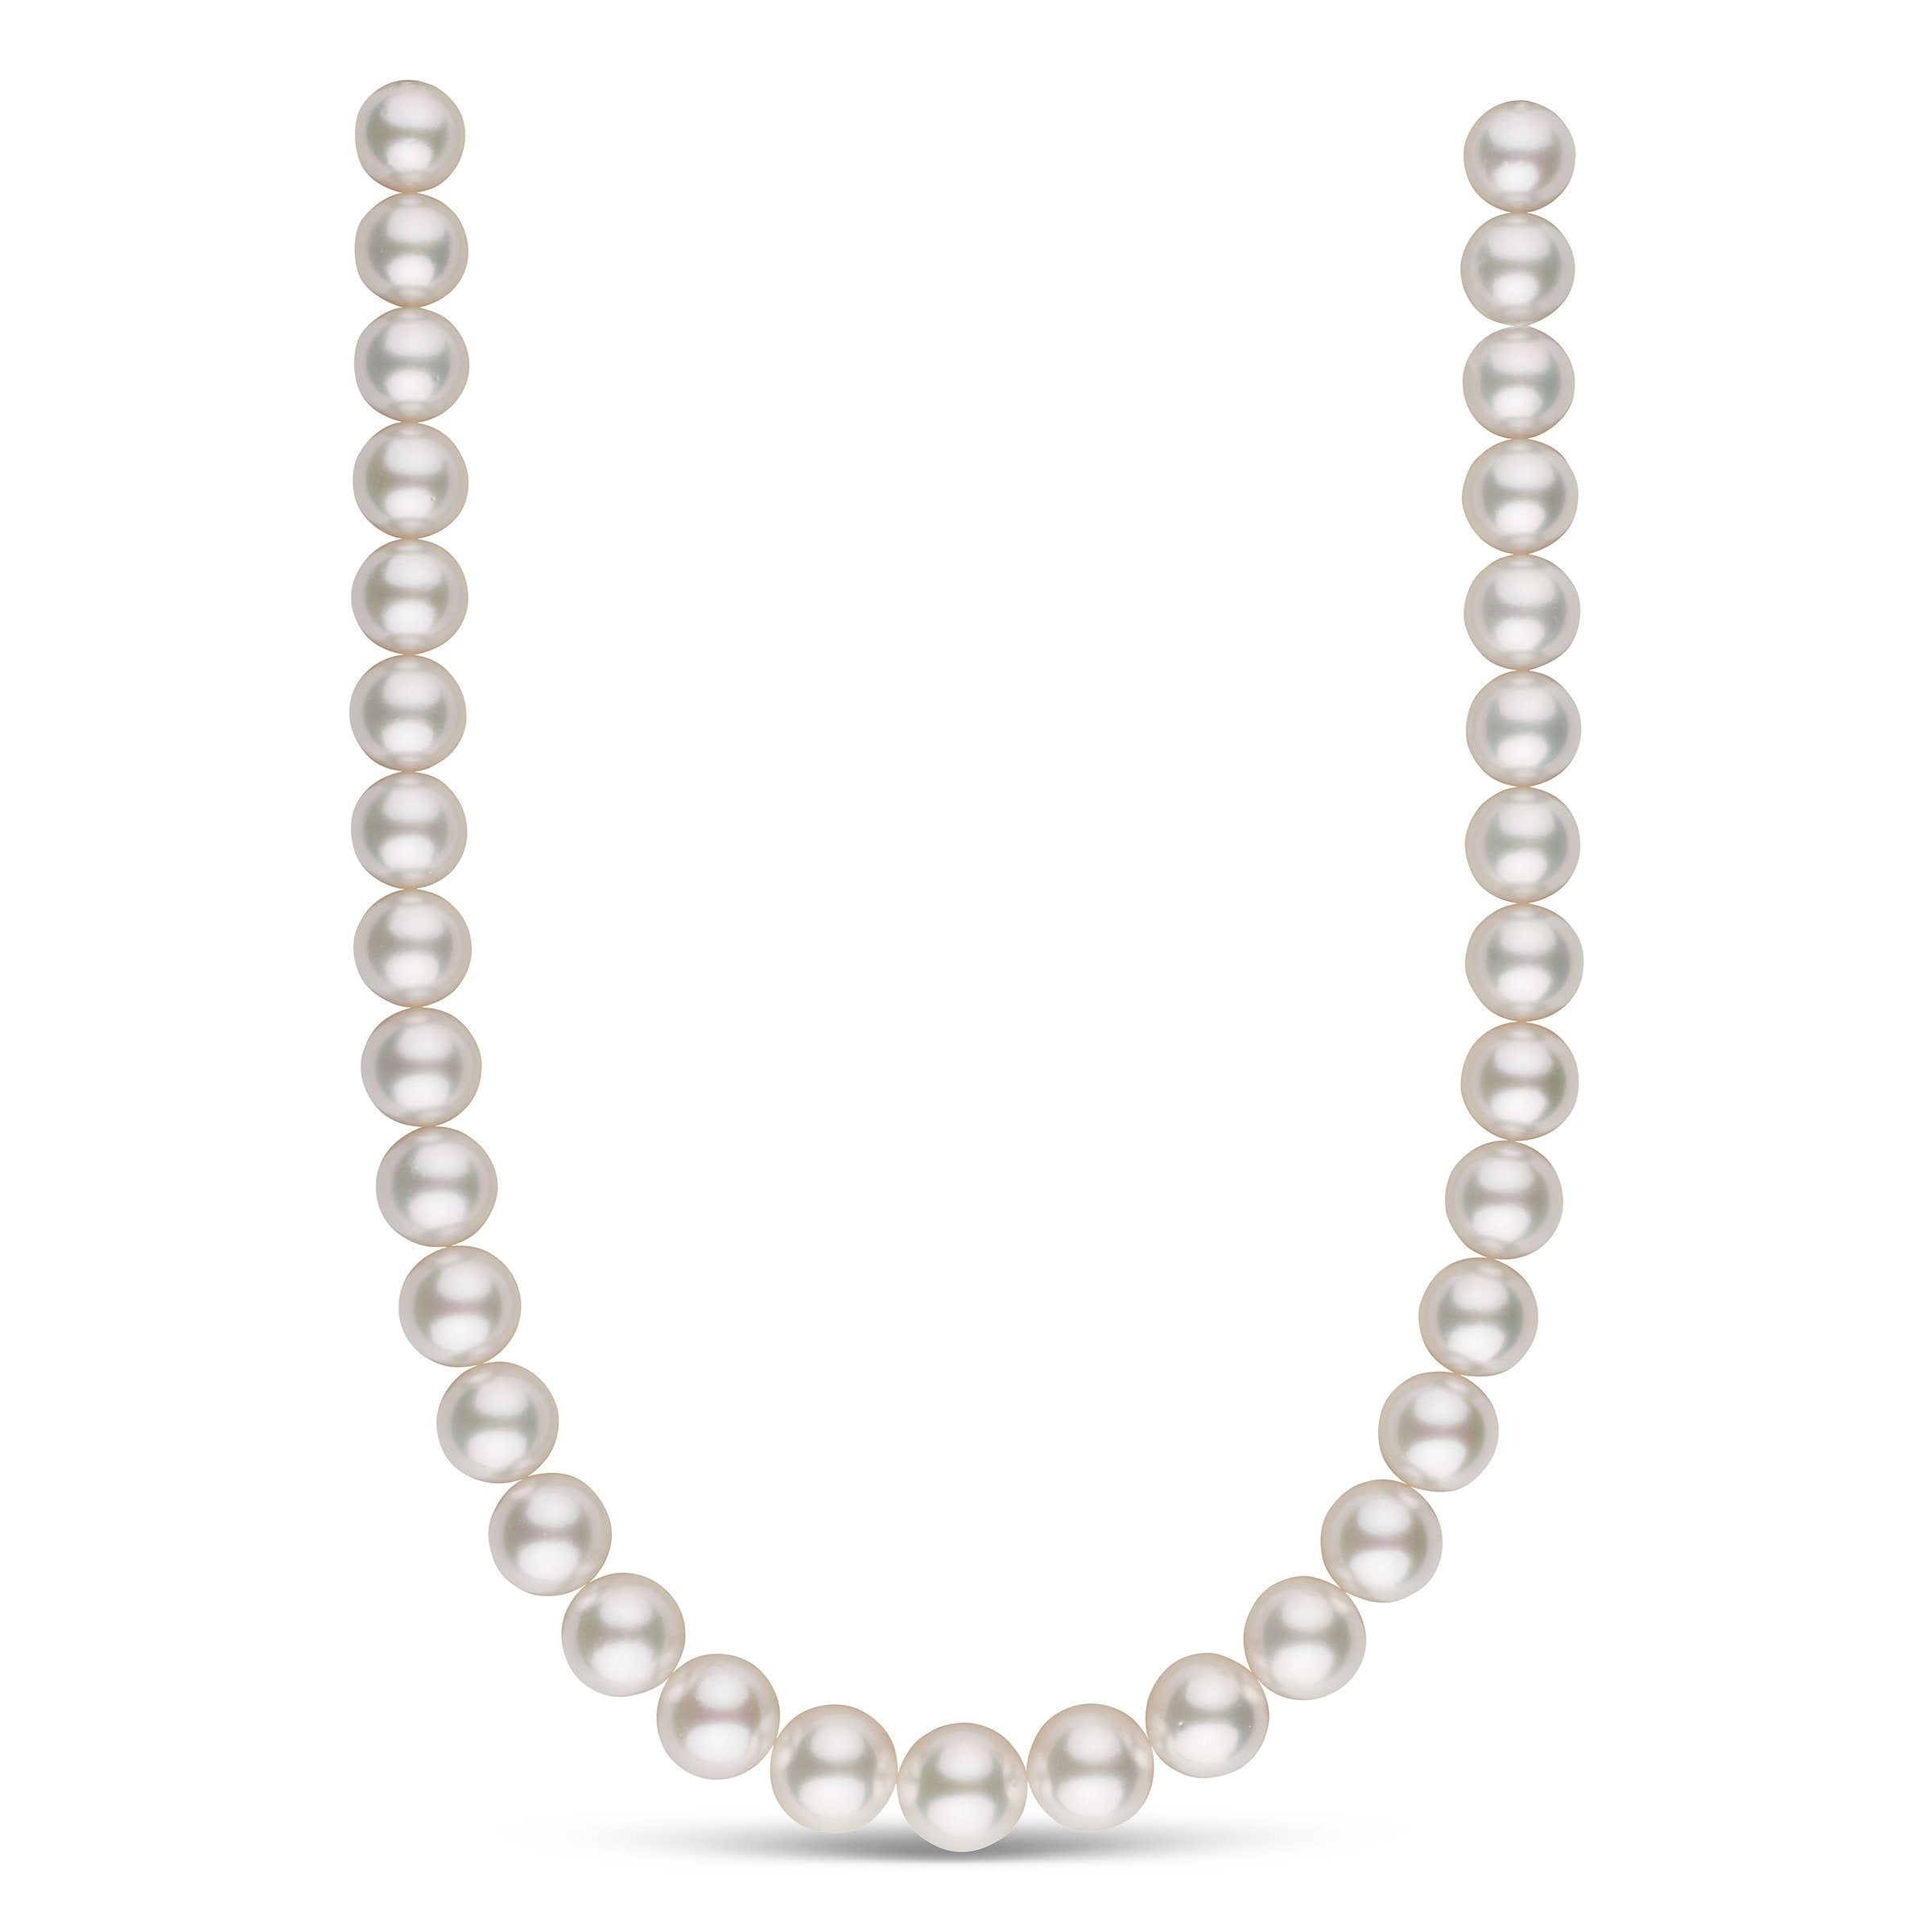 The Für Elise White South Sea Pearl Necklace